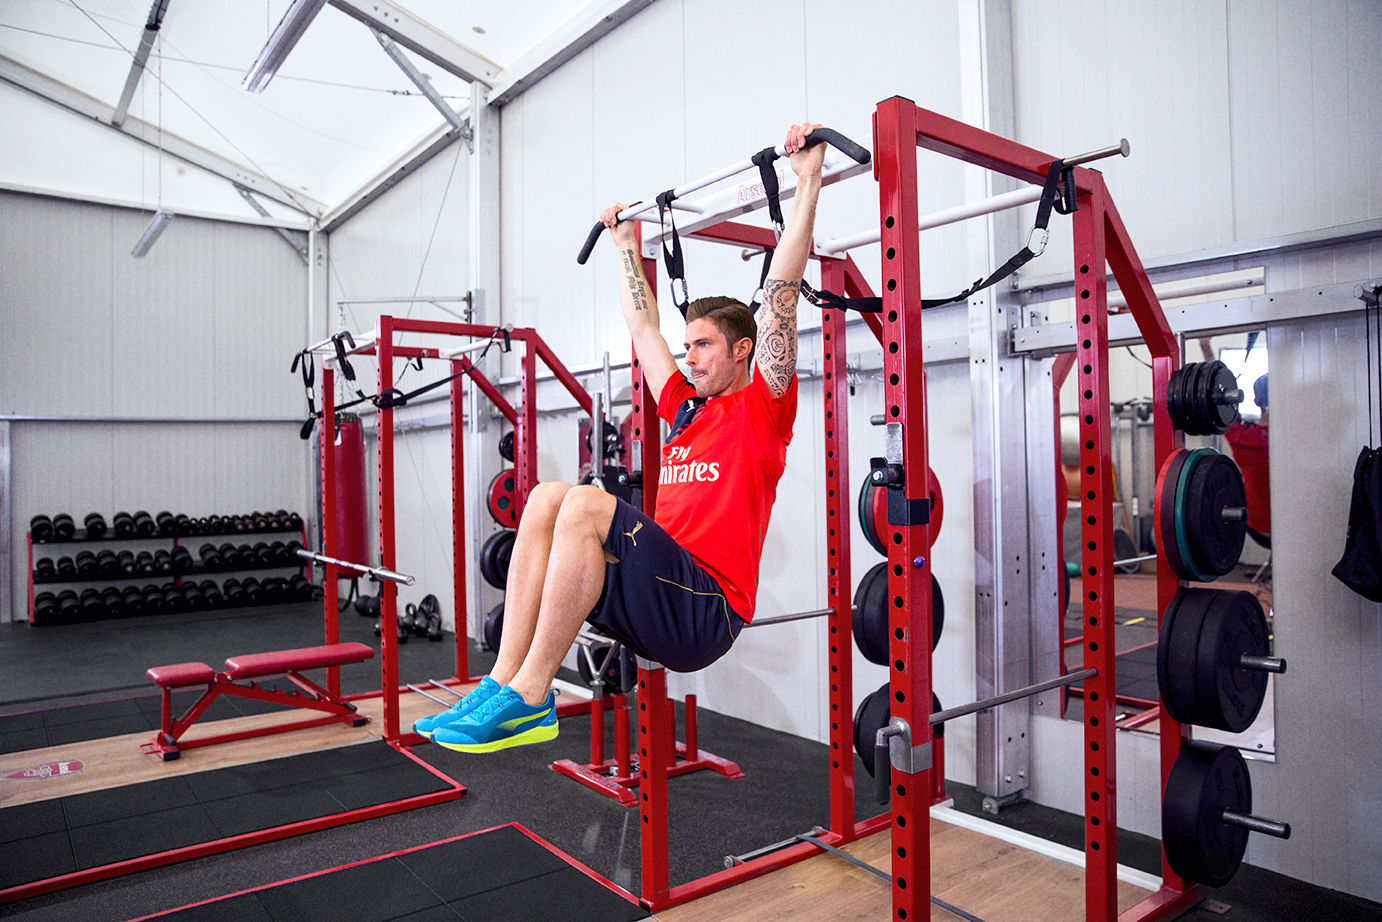 Arsenal Puma what are you training for